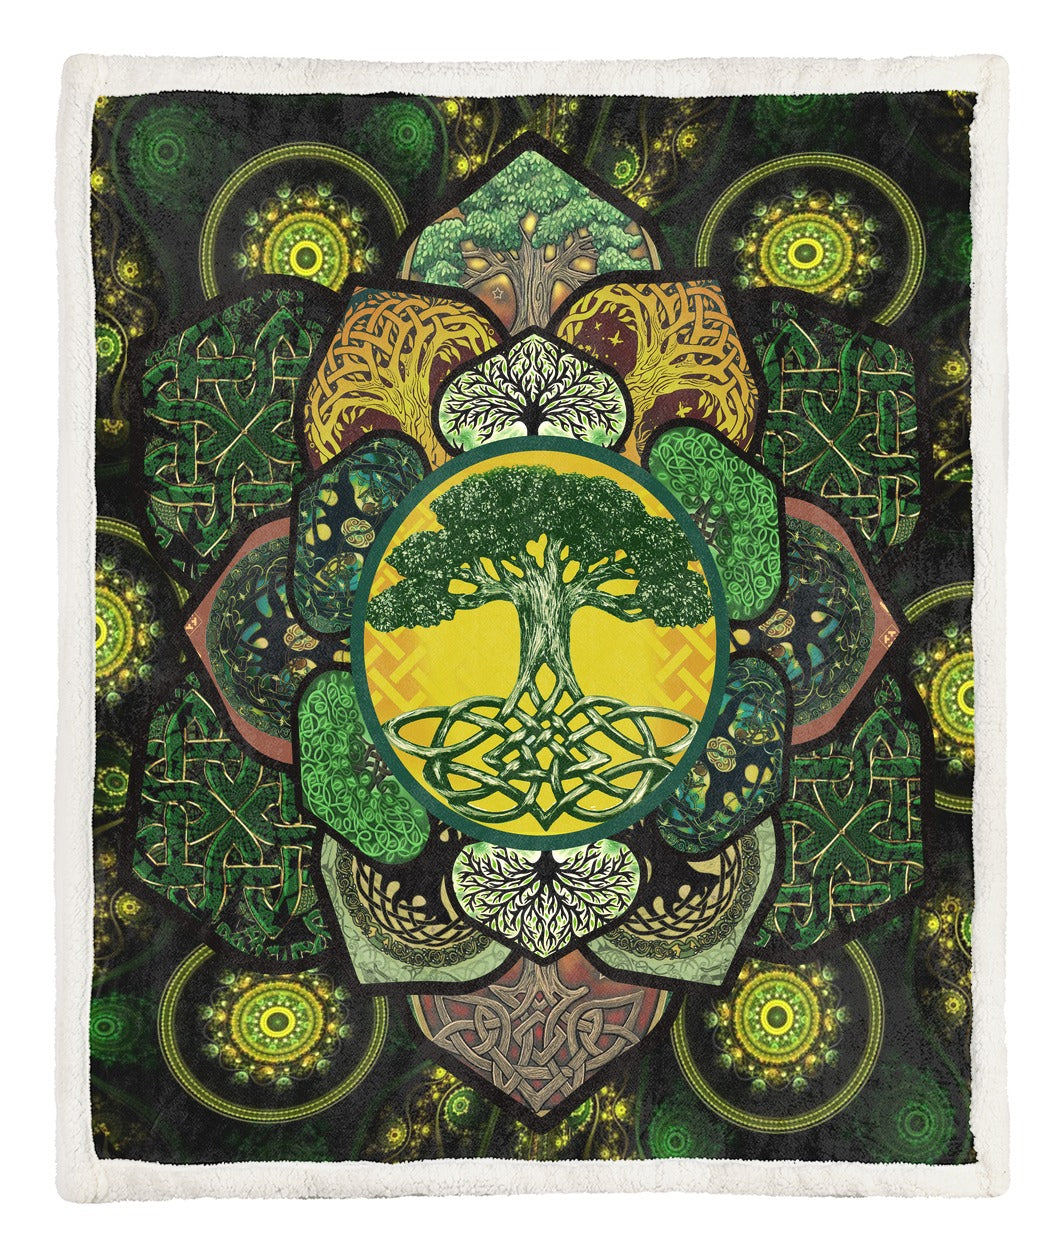 tree-of-life-throw-blanket-tabccc19103864